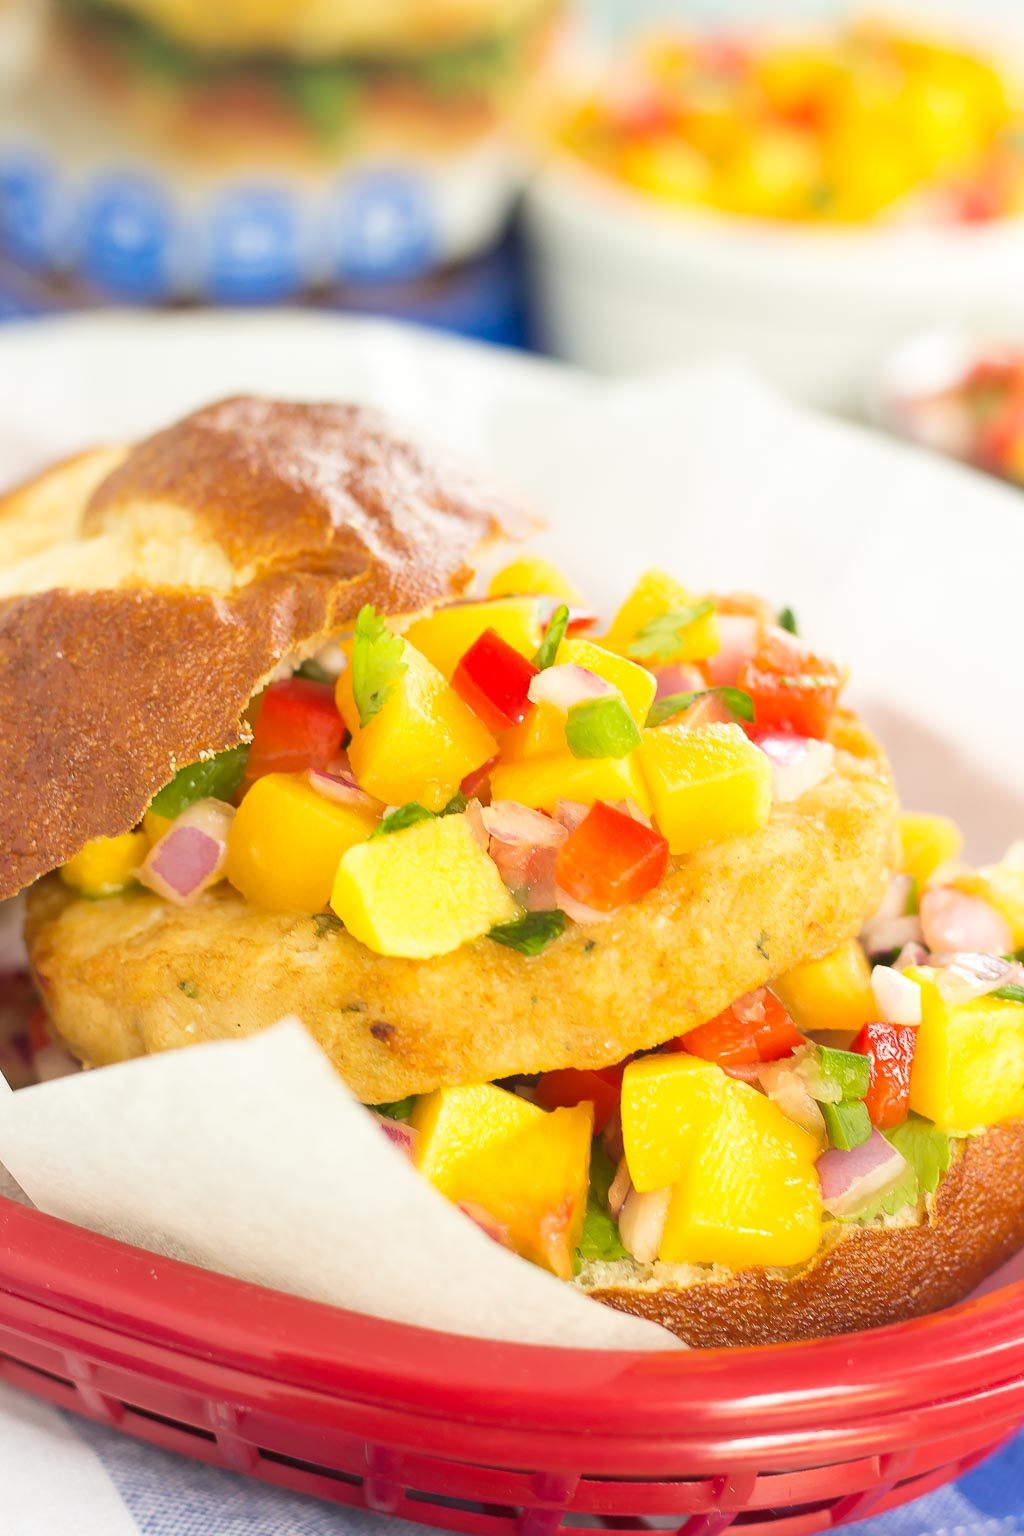 These Alaskan Pollock Burgers with Peach Mango Salsa are easy to prepare and bursting with flavor. The Alaskan Pollock patty provides a mild taste, while the peach mango salsa gives it the perfect touch of sweet and spicy. If you're looking for a new burger filed with the tastes of summer, then this is it!